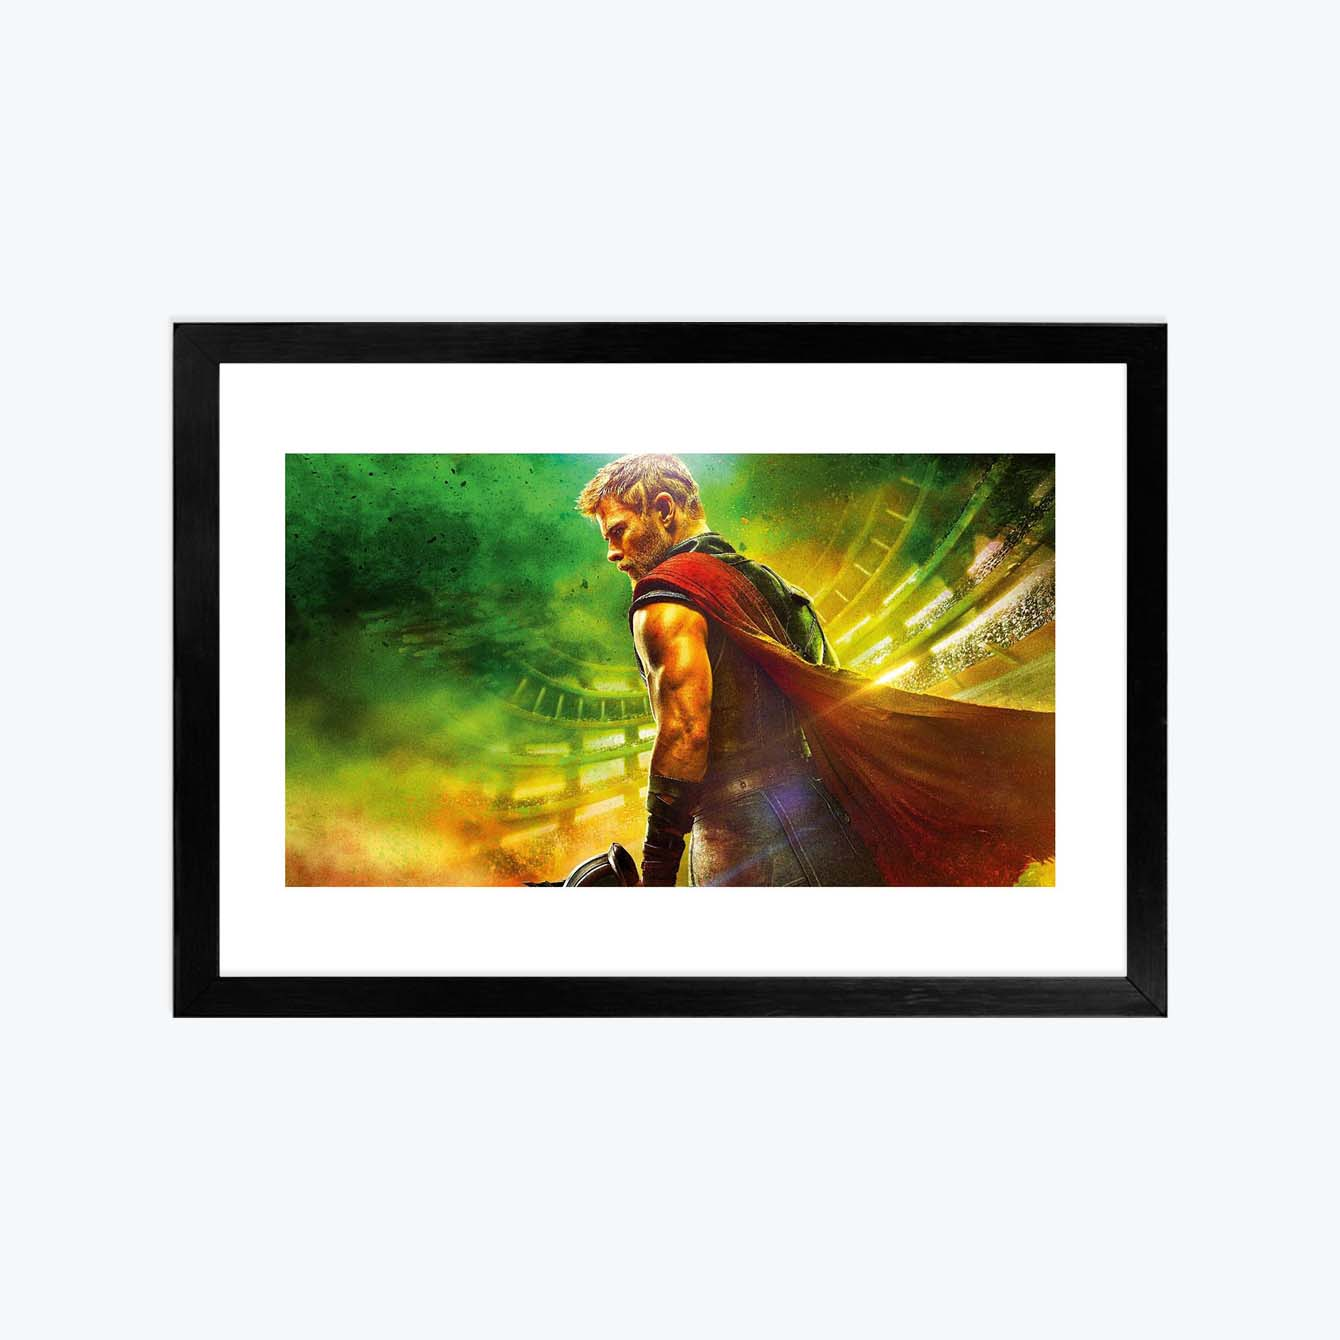 Thor Photography Glass Framed Posters & Artprints